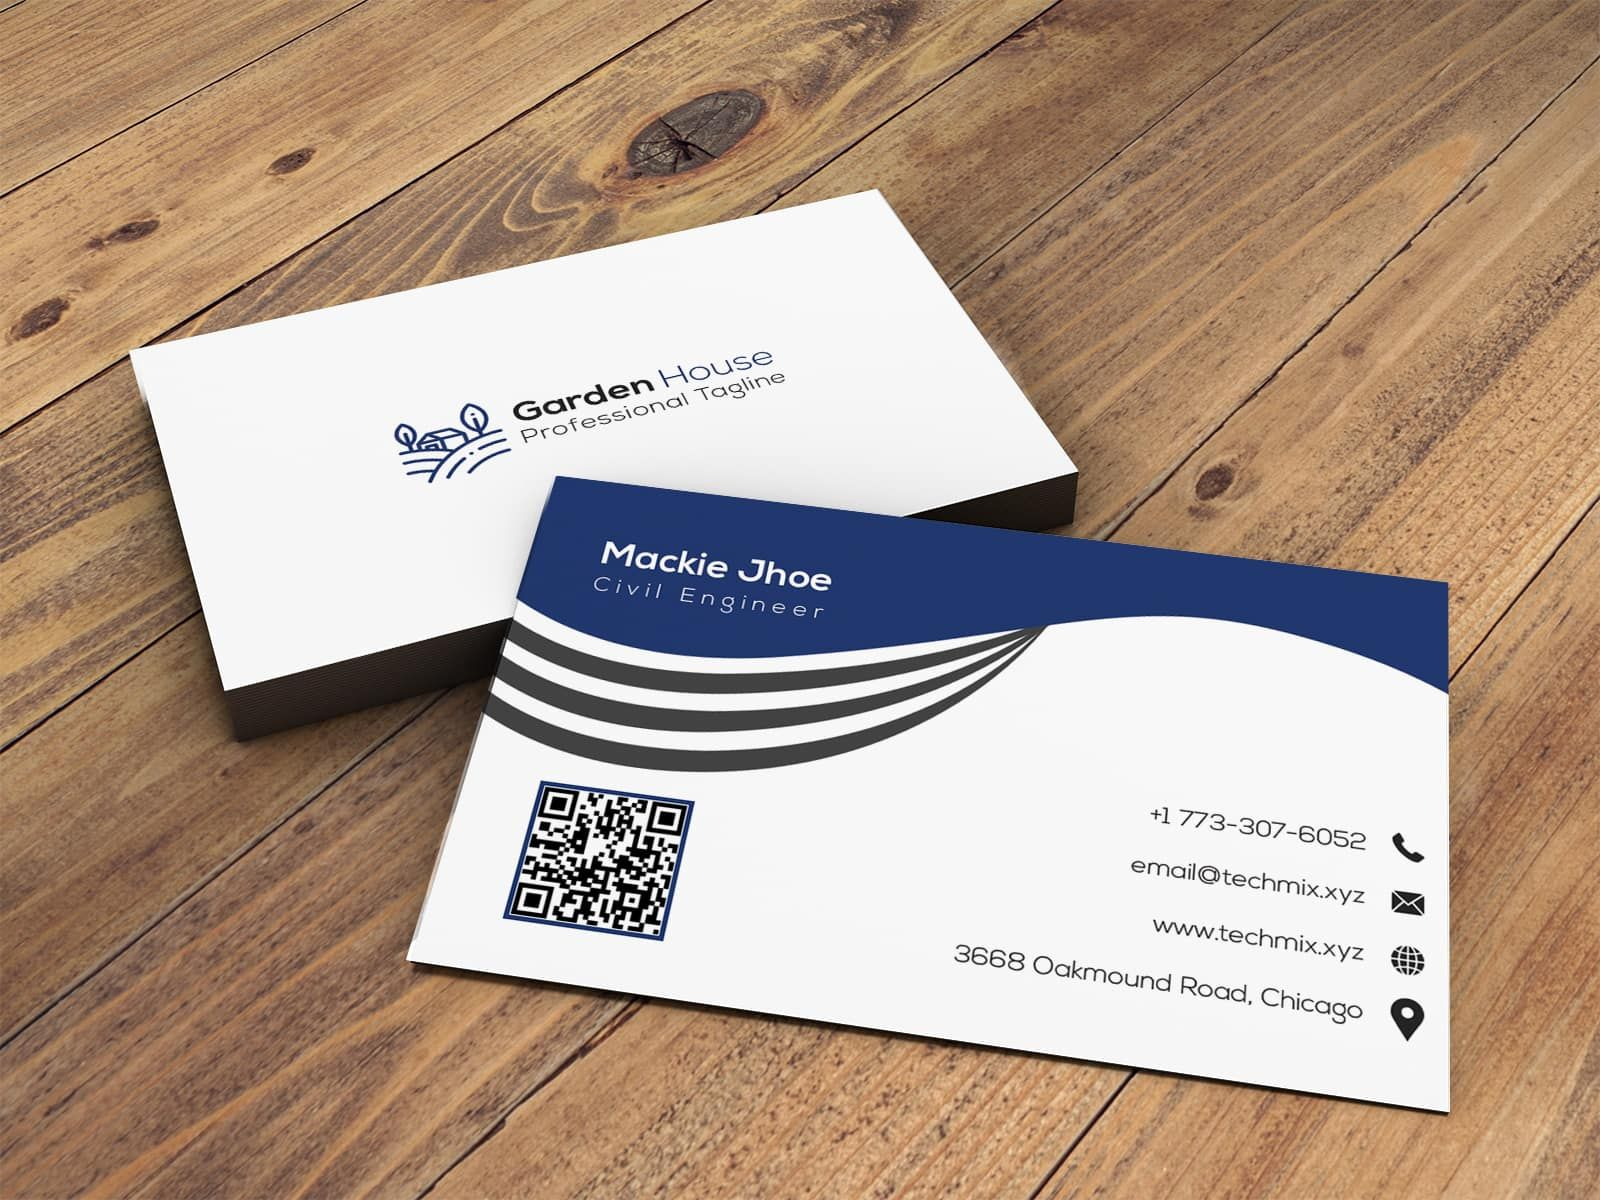 Civil Engineer Business Cards Business Cards Creative Templates Business Cards Collection Business Cards Creative